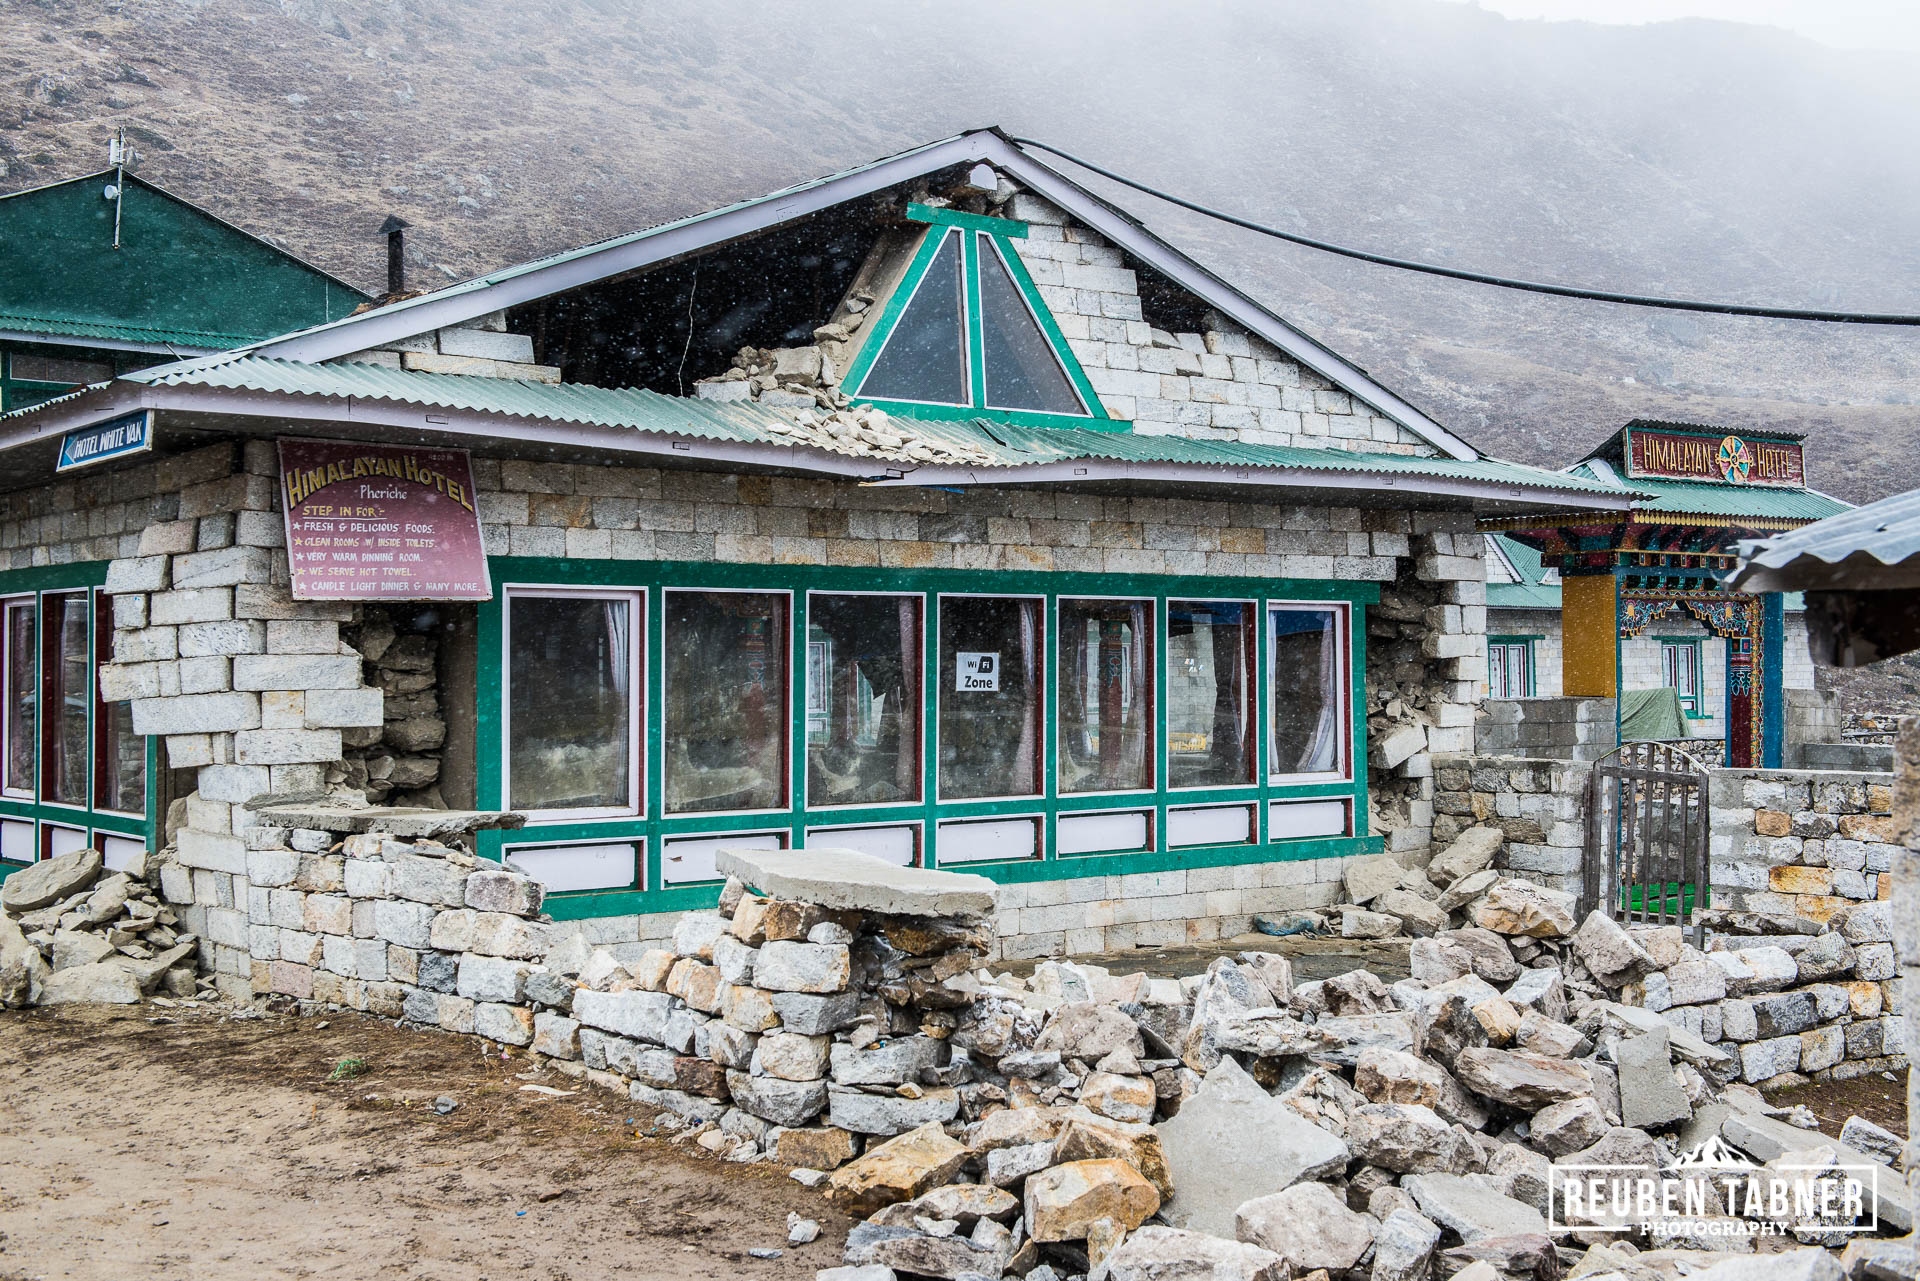 A large earthquake rocked the Himalayan village of Pheriche at 4240 meters resulting in many buildings being damaged, including the Himalayan Hotel, one of the biggest lodges in the village.